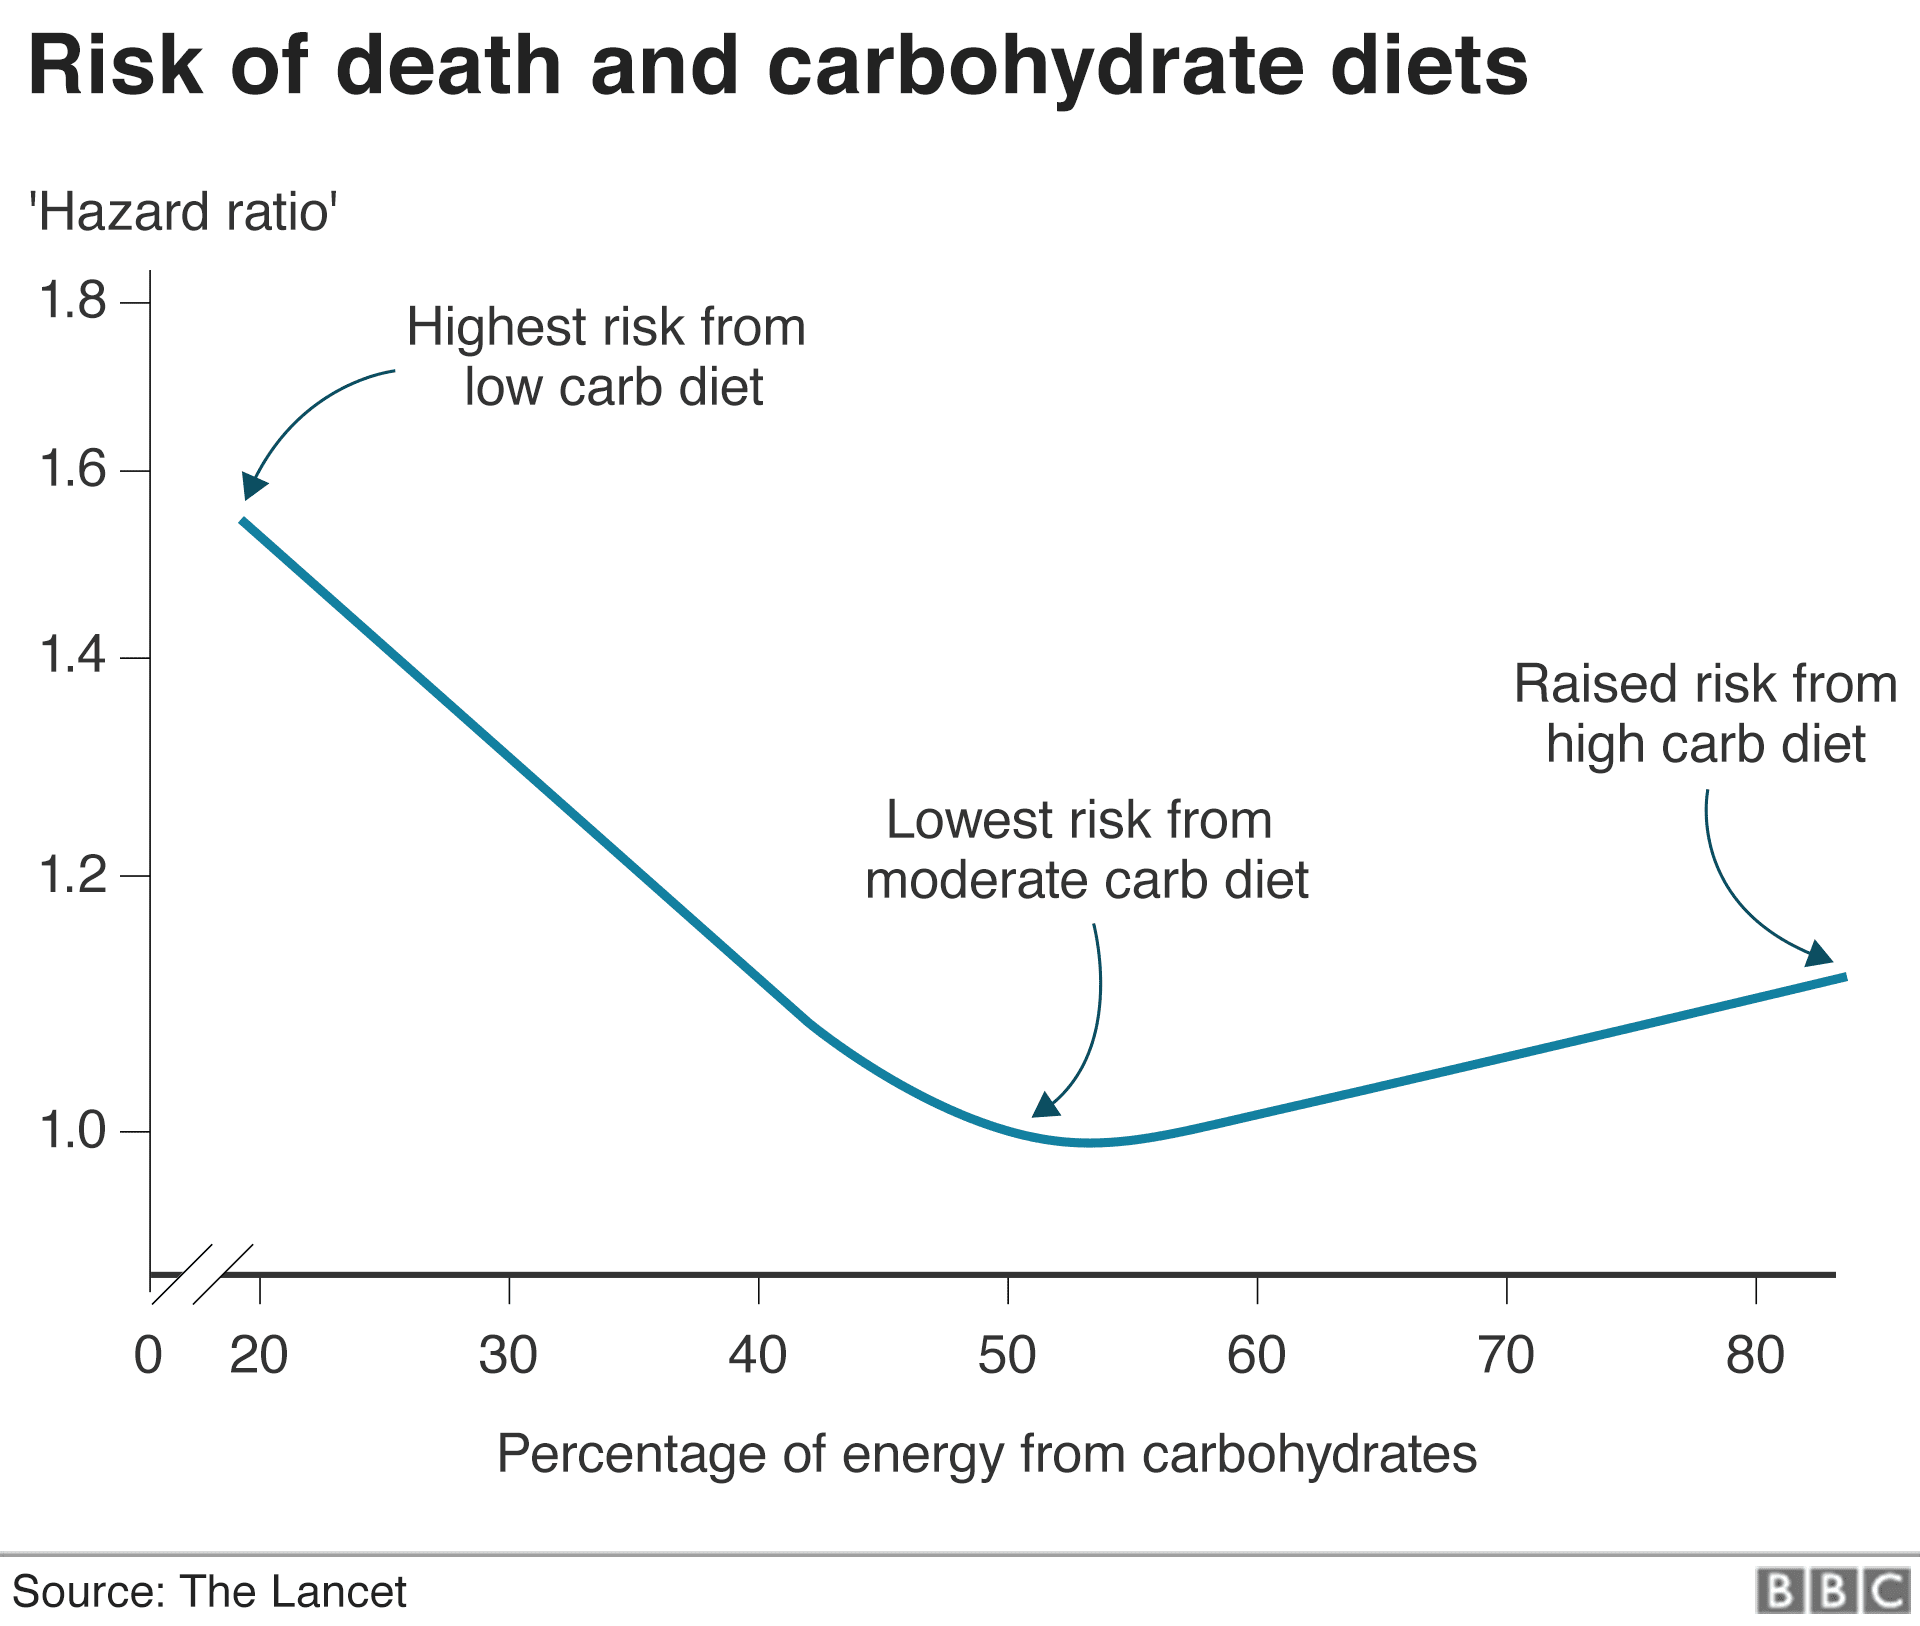 Low-carb diets could shorten life, study suggests - BBC News